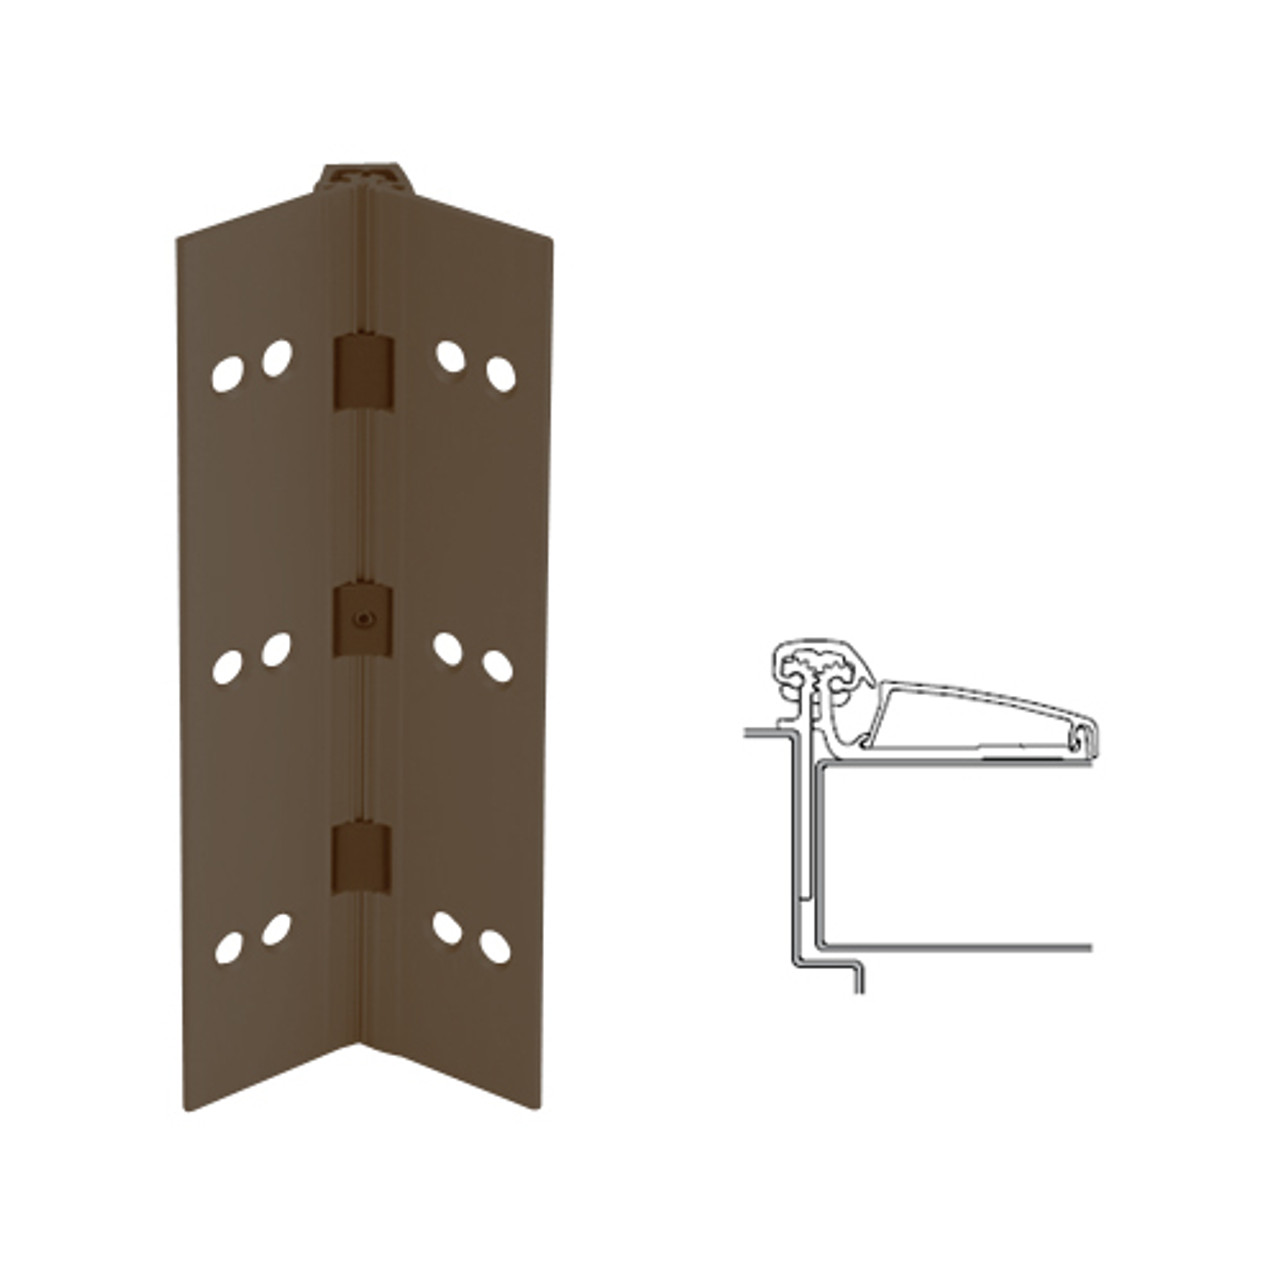 045XY-313AN-120-TFWD IVES Adjustable Half Surface Continuous Geared Hinges with Thread Forming Screws in Dark Bronze Anodized